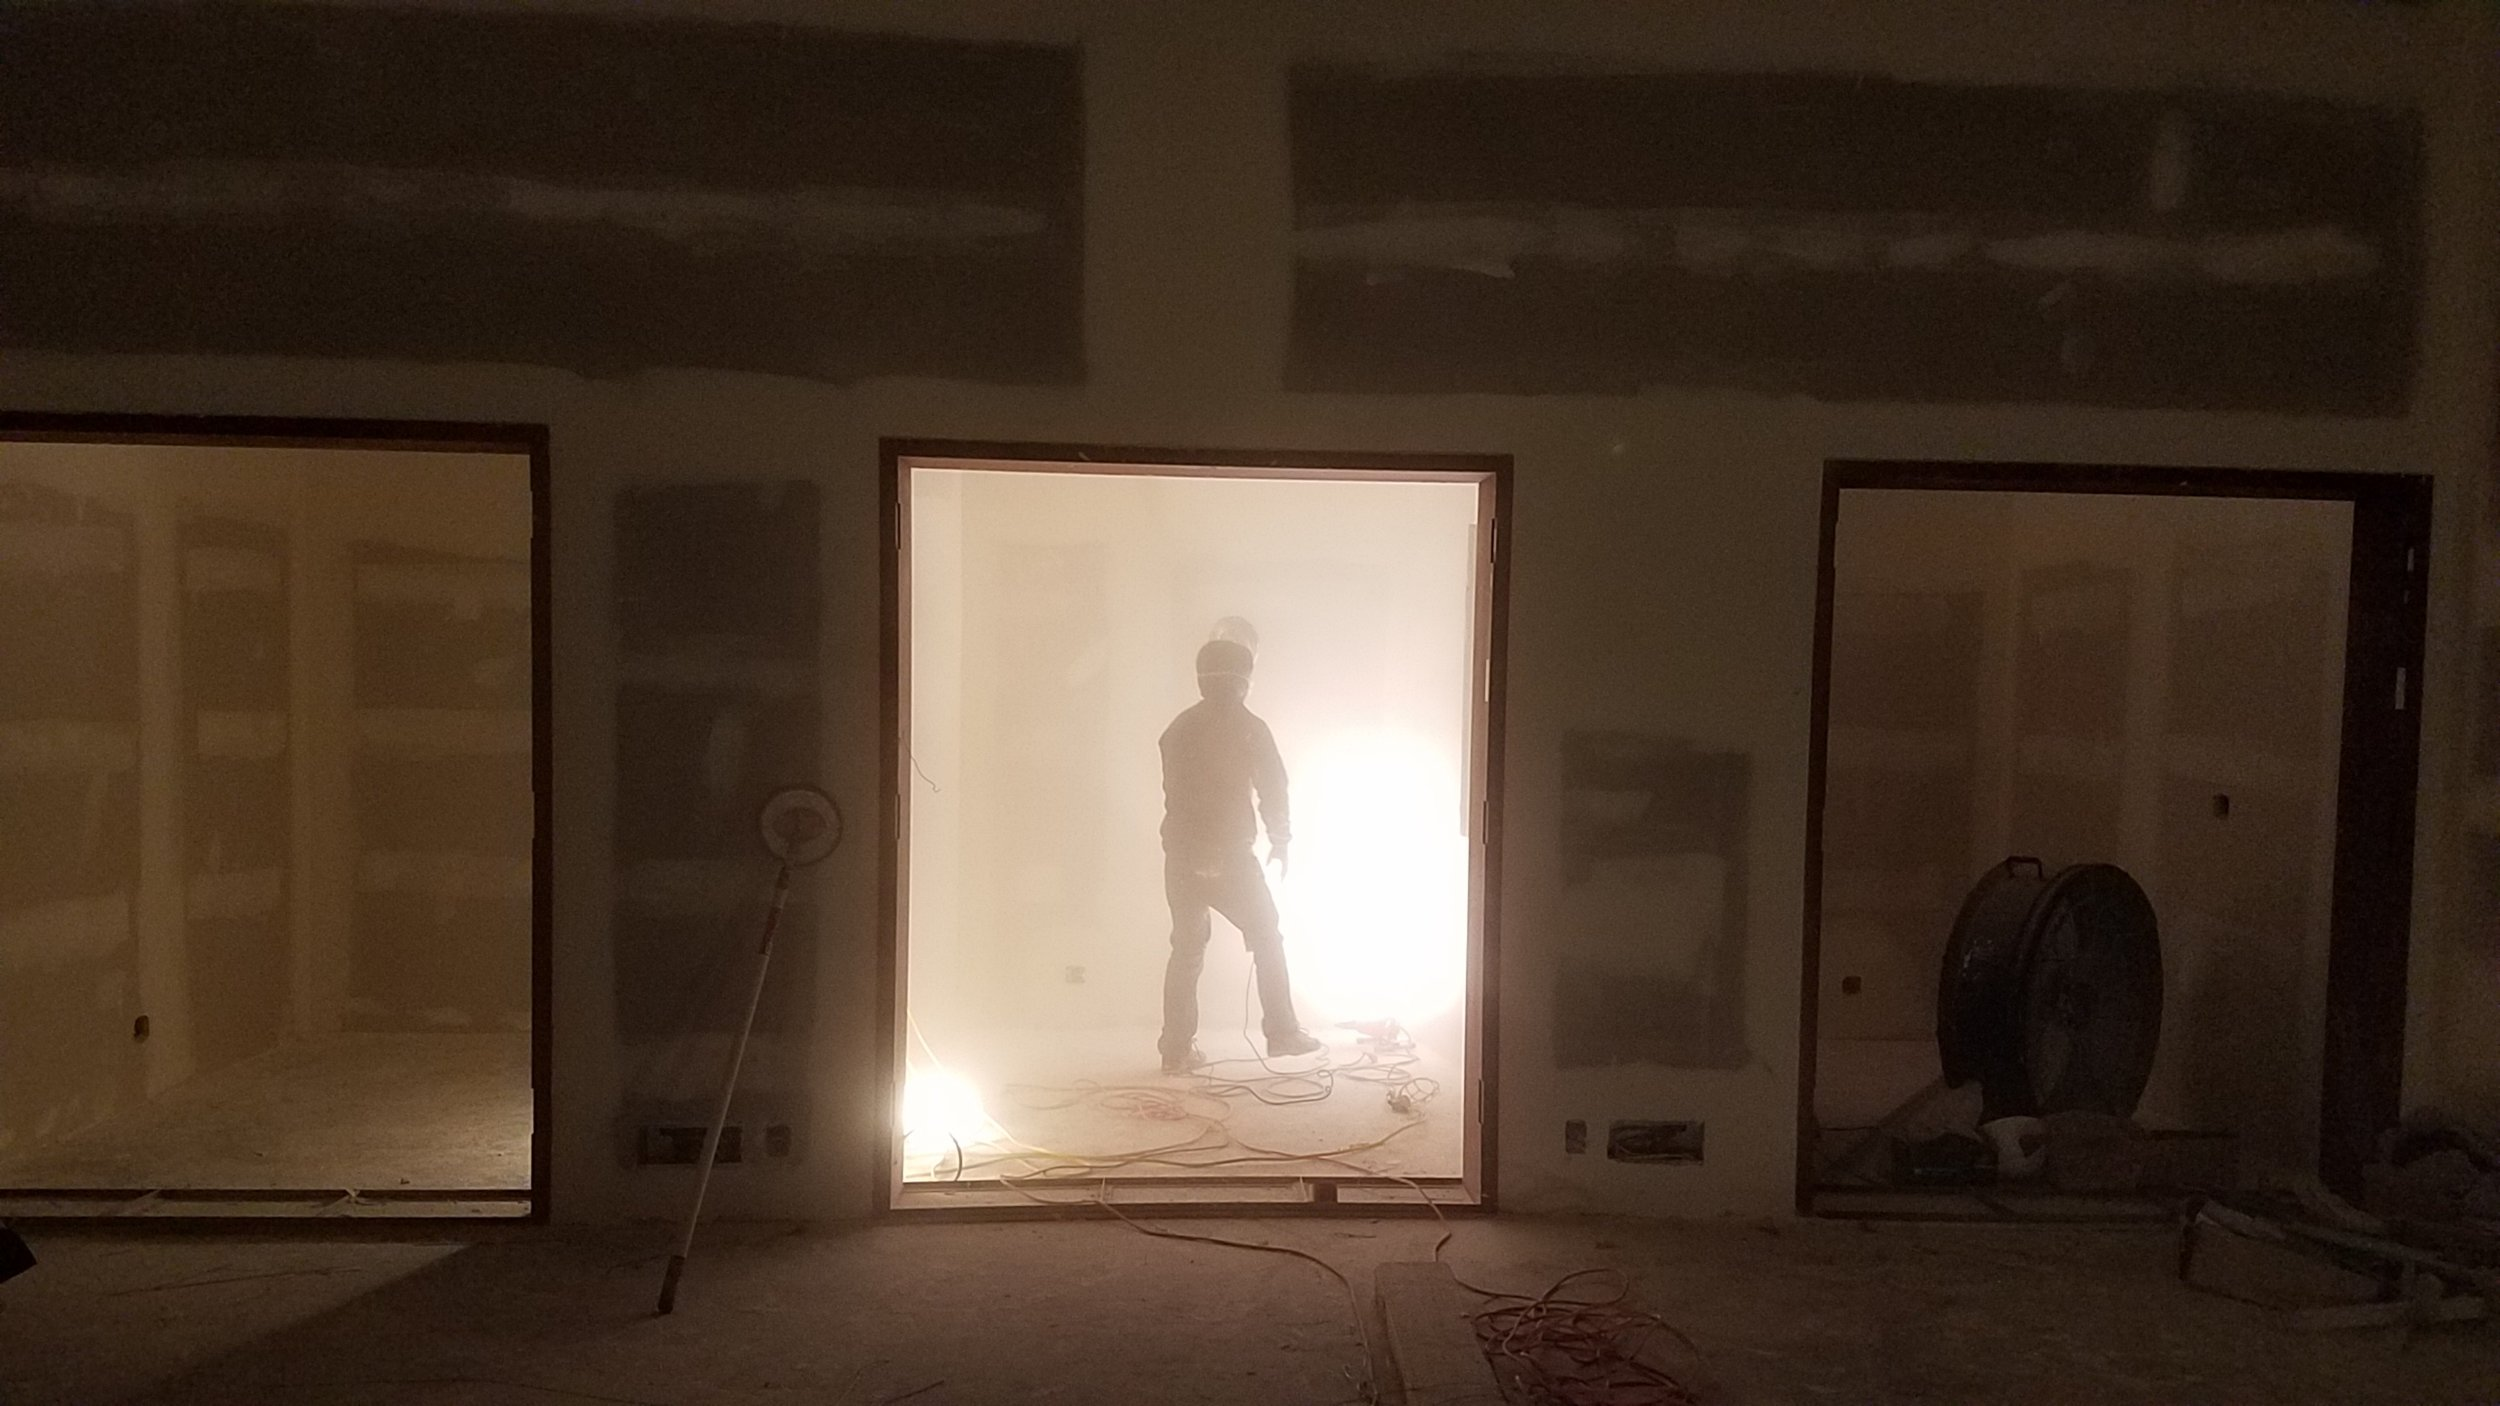 Lots of sheetrock sanding this week. Despite our best efforts the dust is everywhere, not just in the new building but in the house as well. Looking forward to this phase being complete.